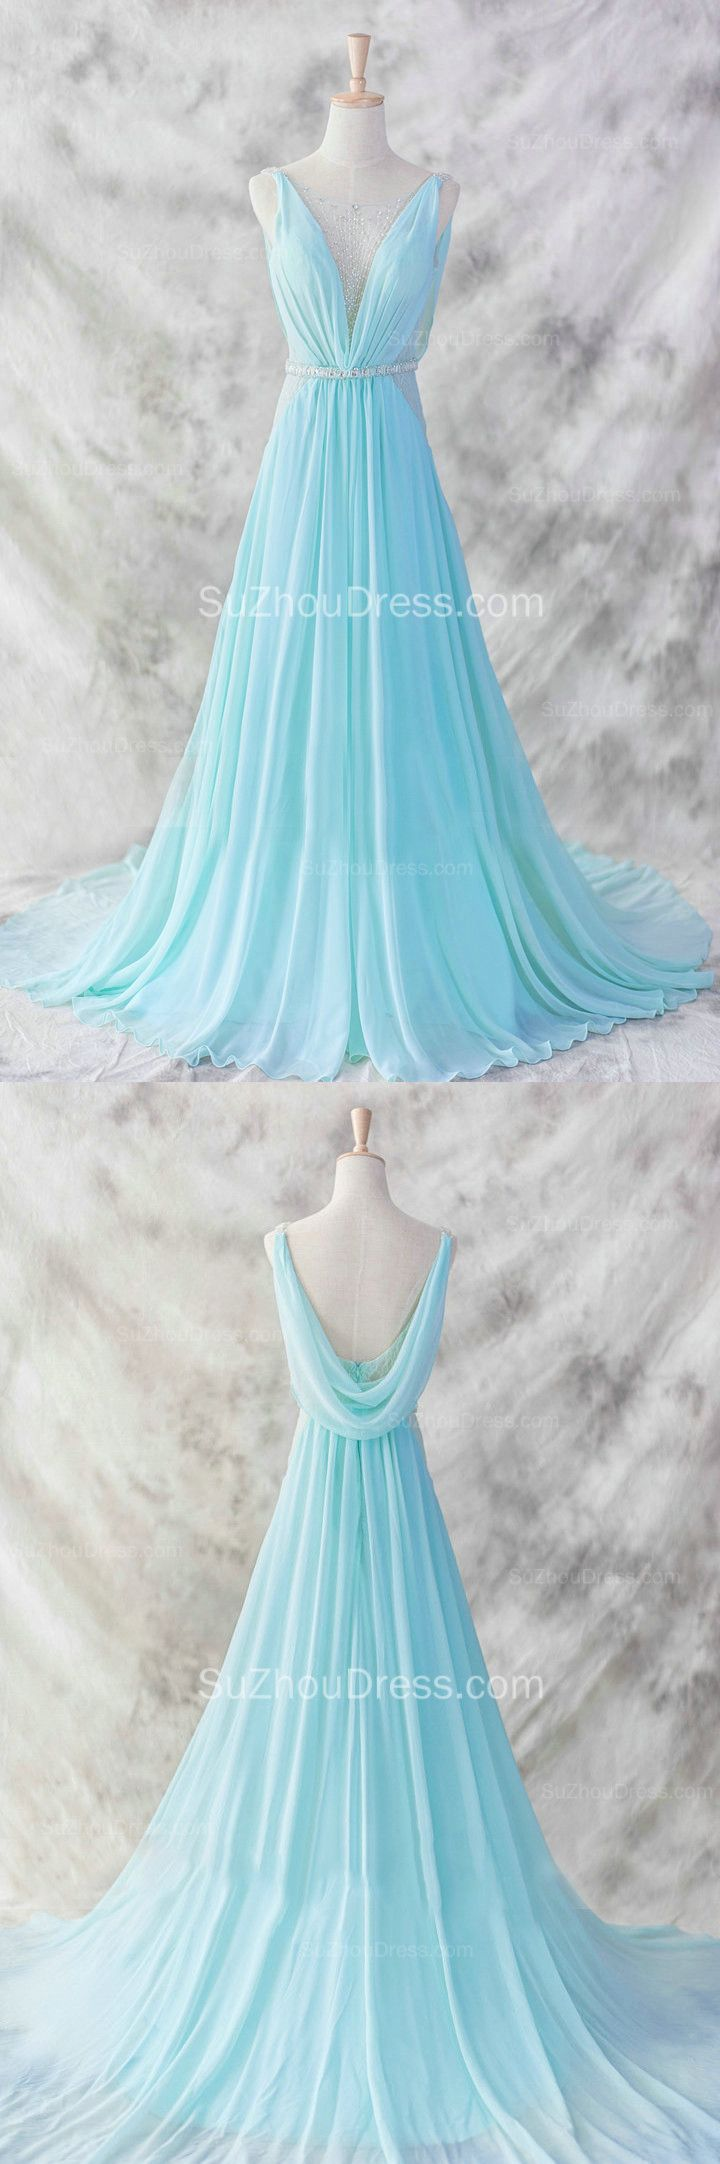 4456 best jennas favorites images on pinterest 2015 evening dresses straps sleeveless blue a line sweep train sequins sash zipper cheap prom gowns ombrellifo Images